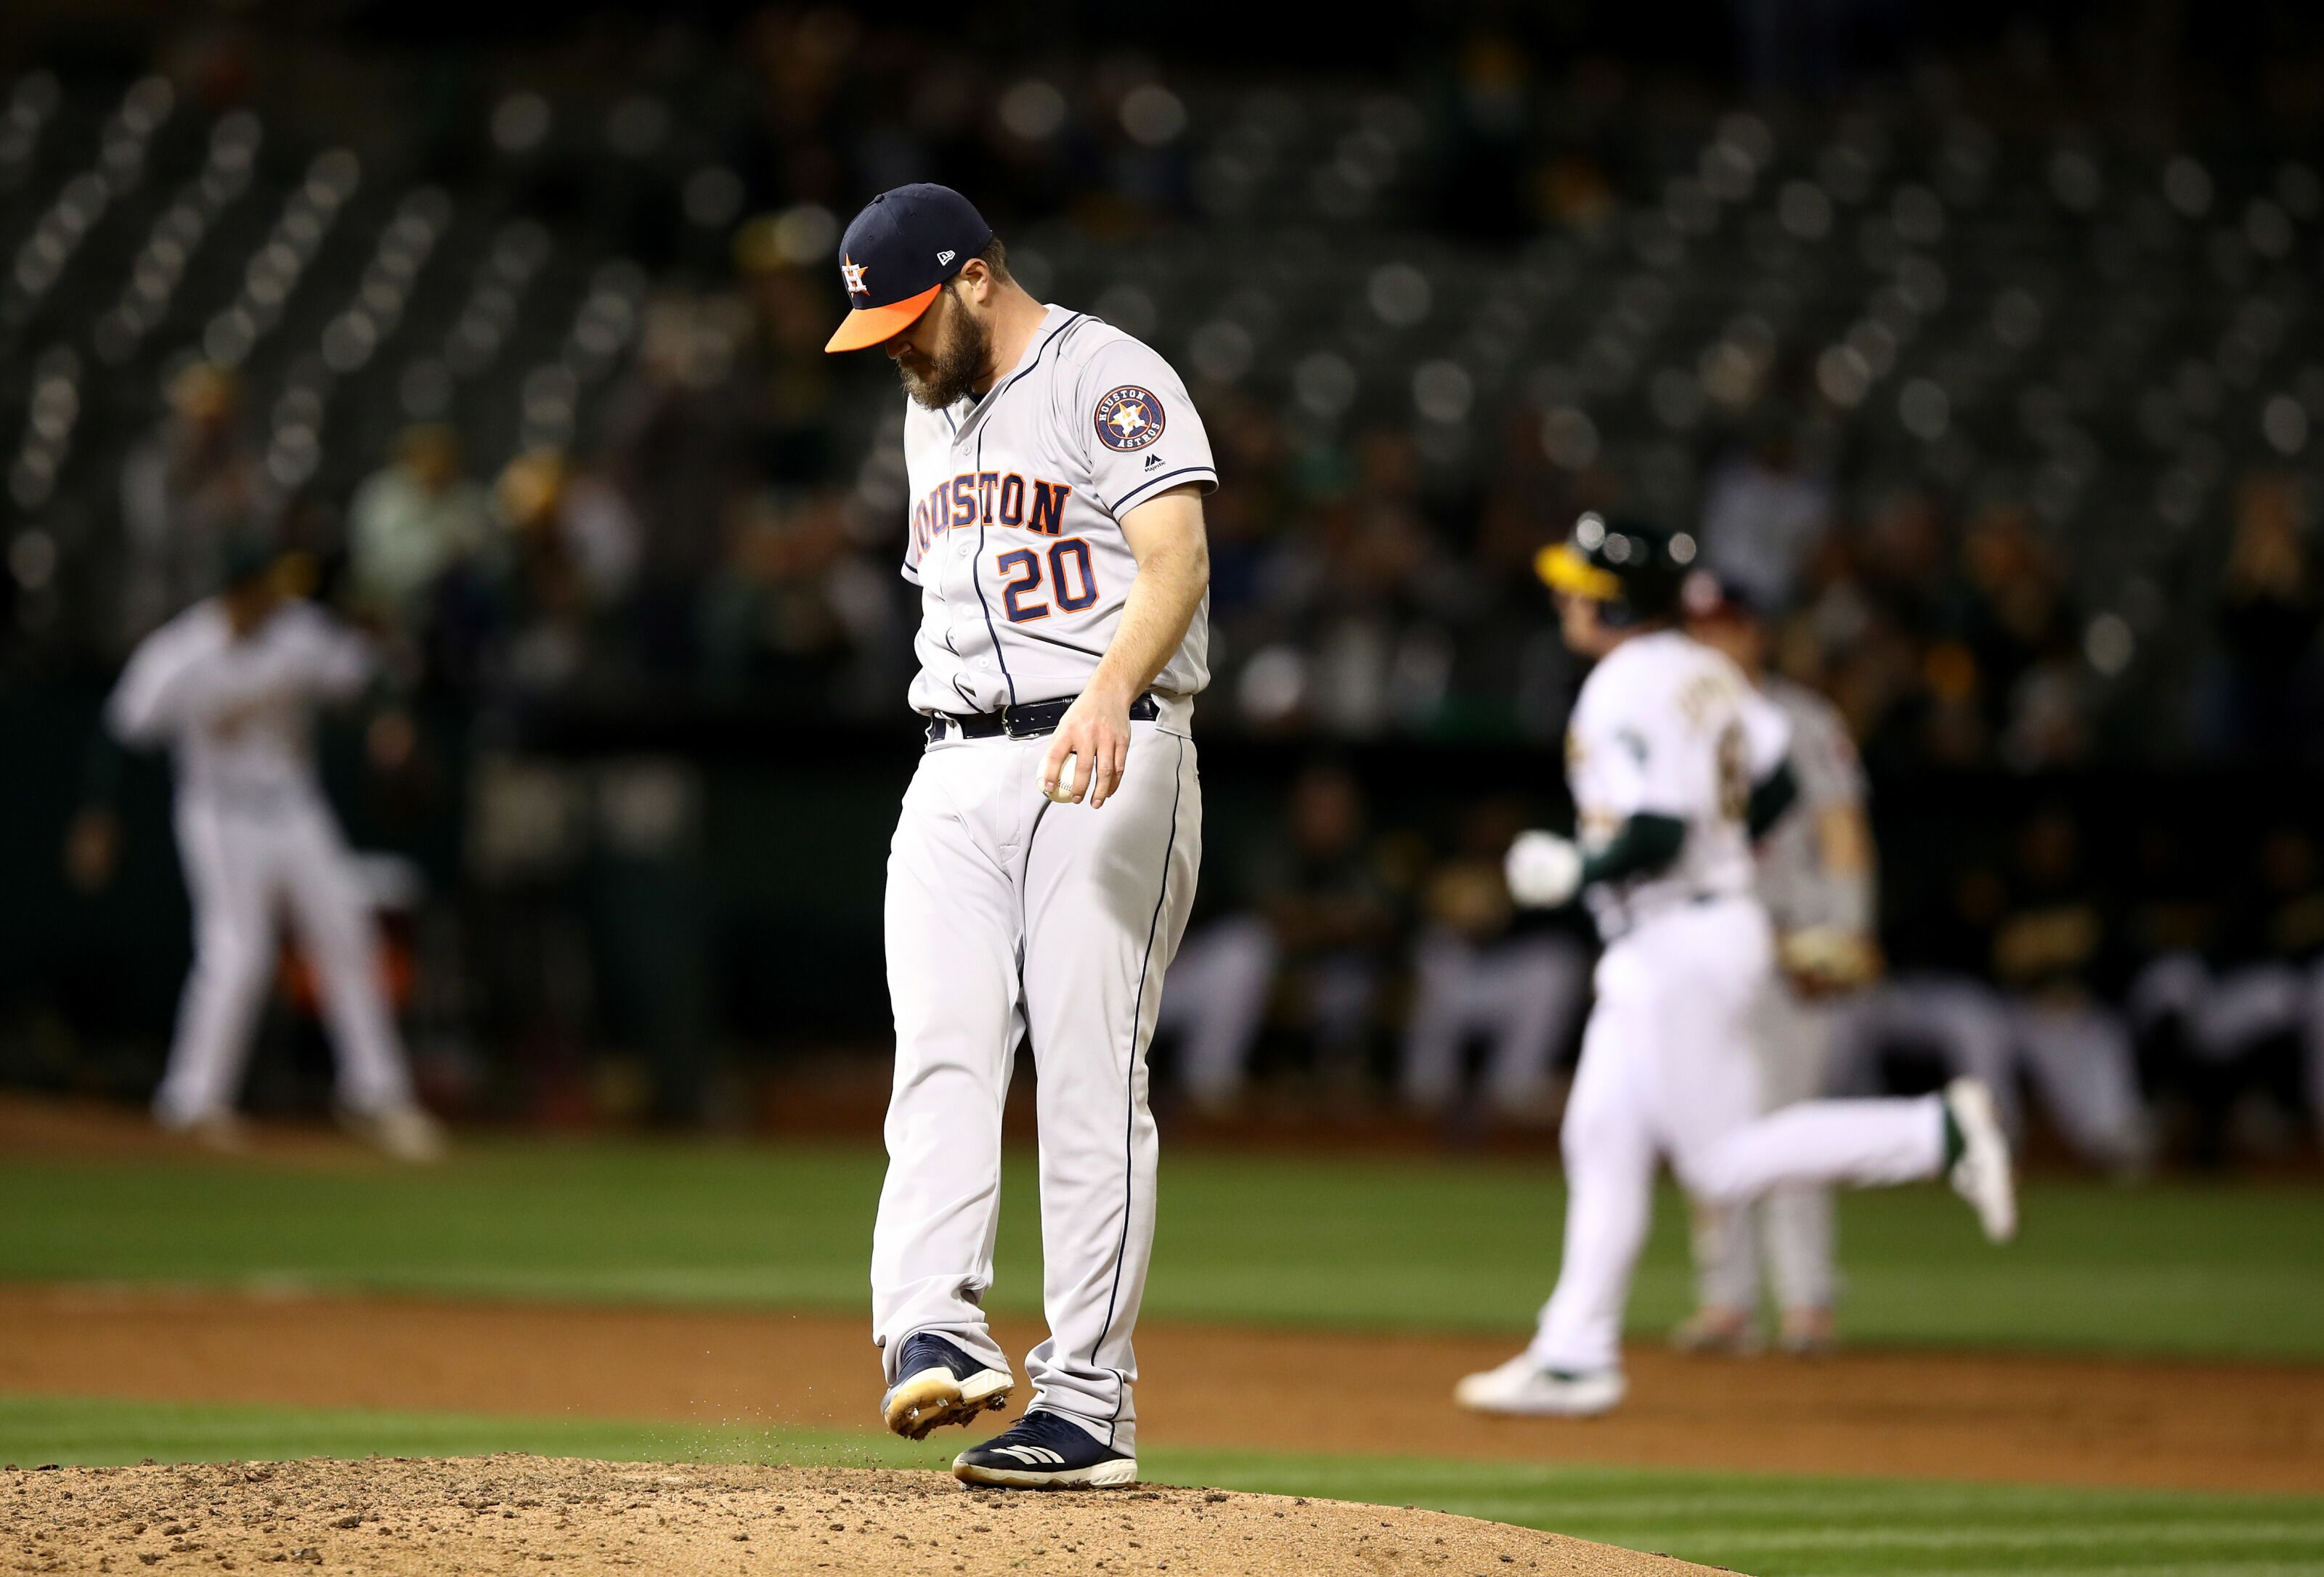 Astros: The Miley Chronicles Vol. 13, How the Turntables